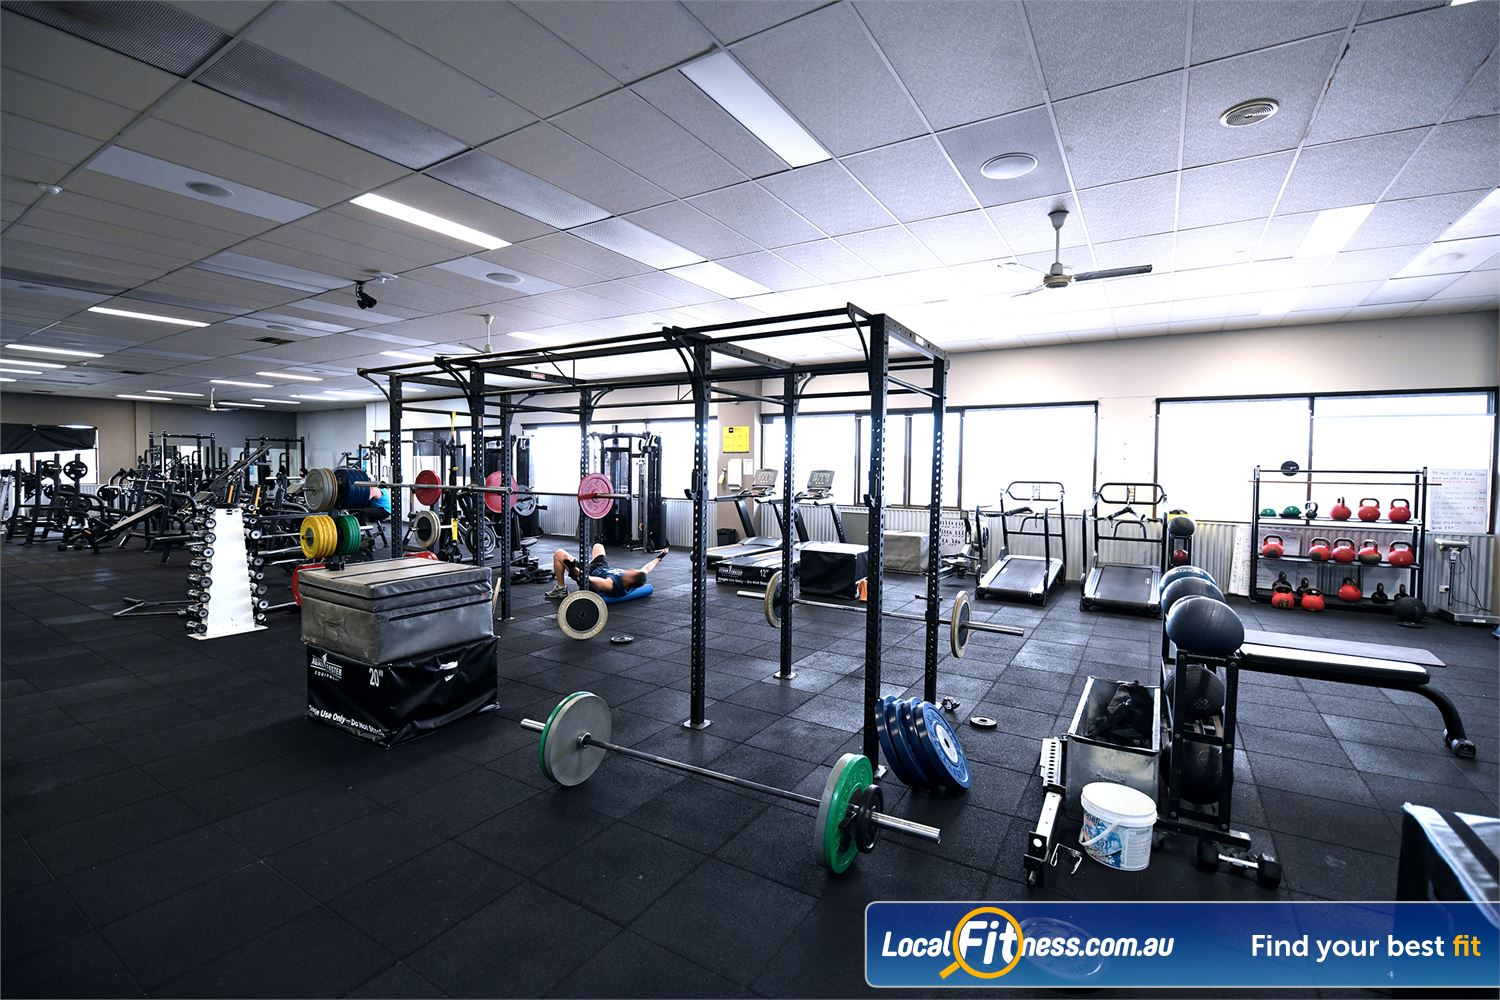 Goodlife Health Clubs Near Truganina The functional training space at Goodlife Hoppers Crossing.